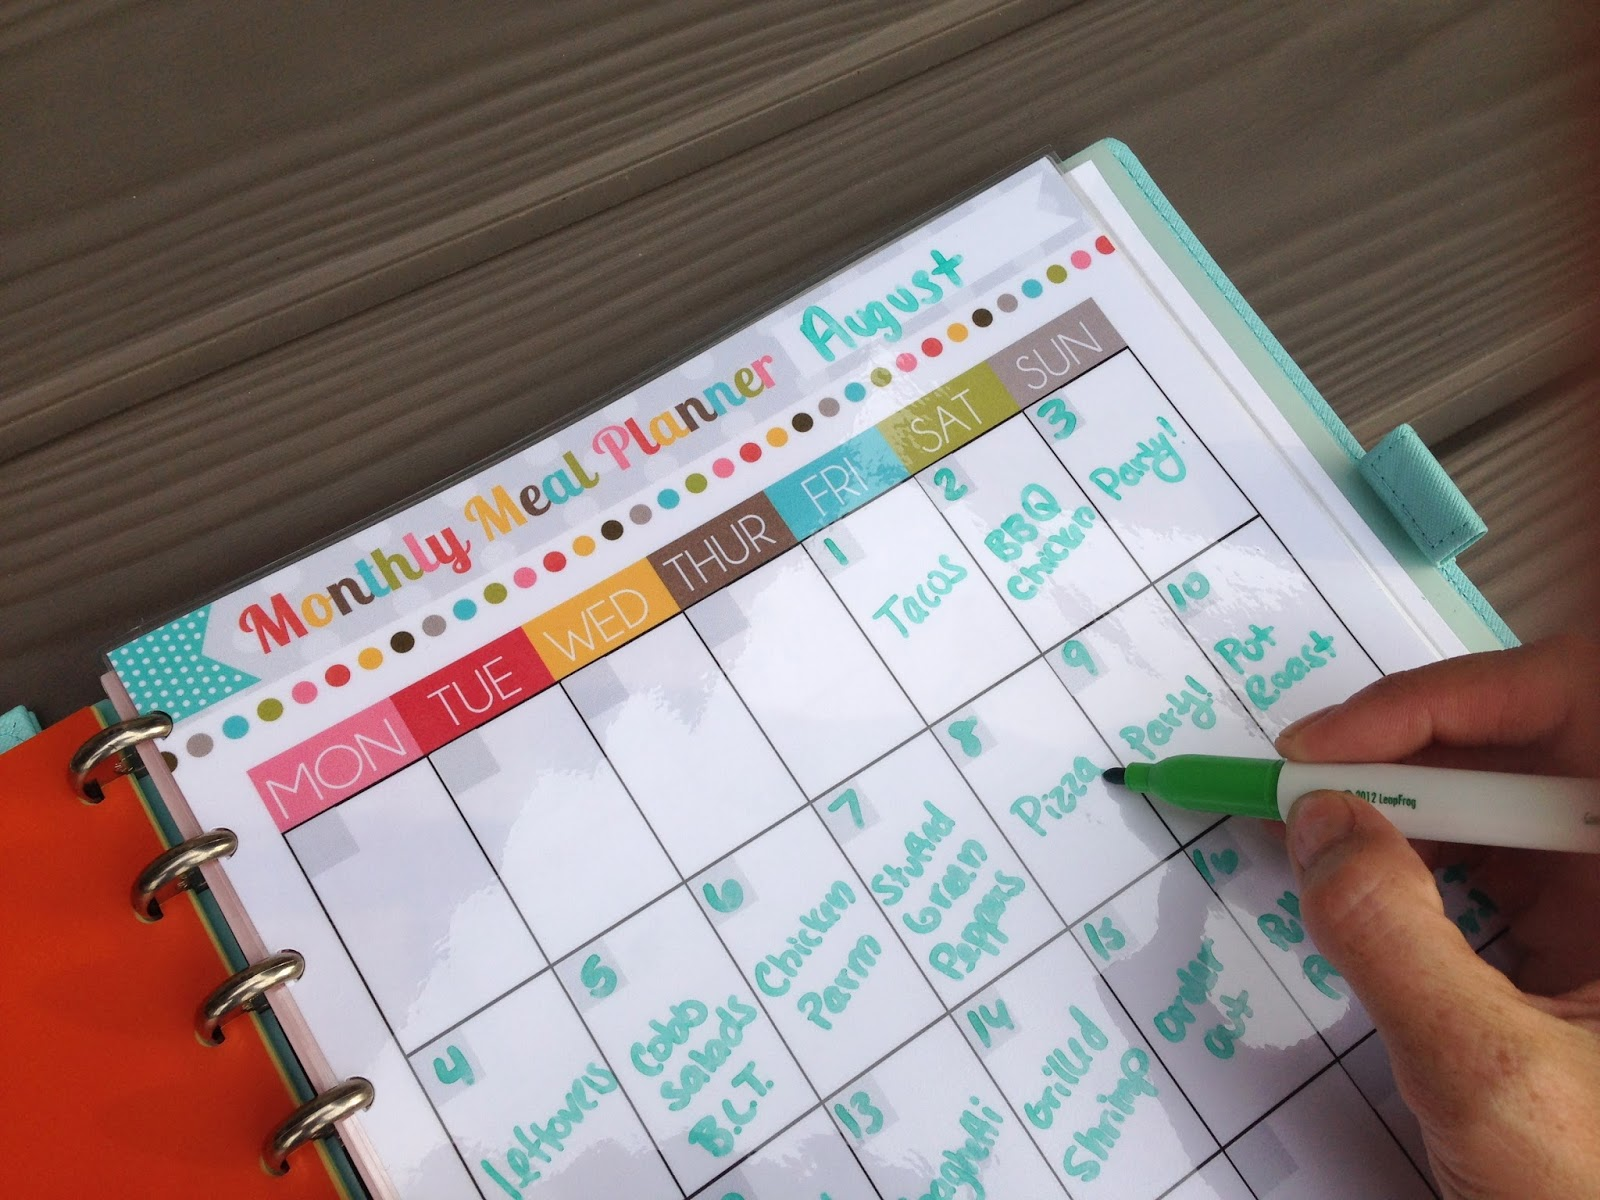 Planning Ideas Old Fashioned Way To Get The Best Pool: The Polka Dot Posie: How To Build YOUR Perfect Planner